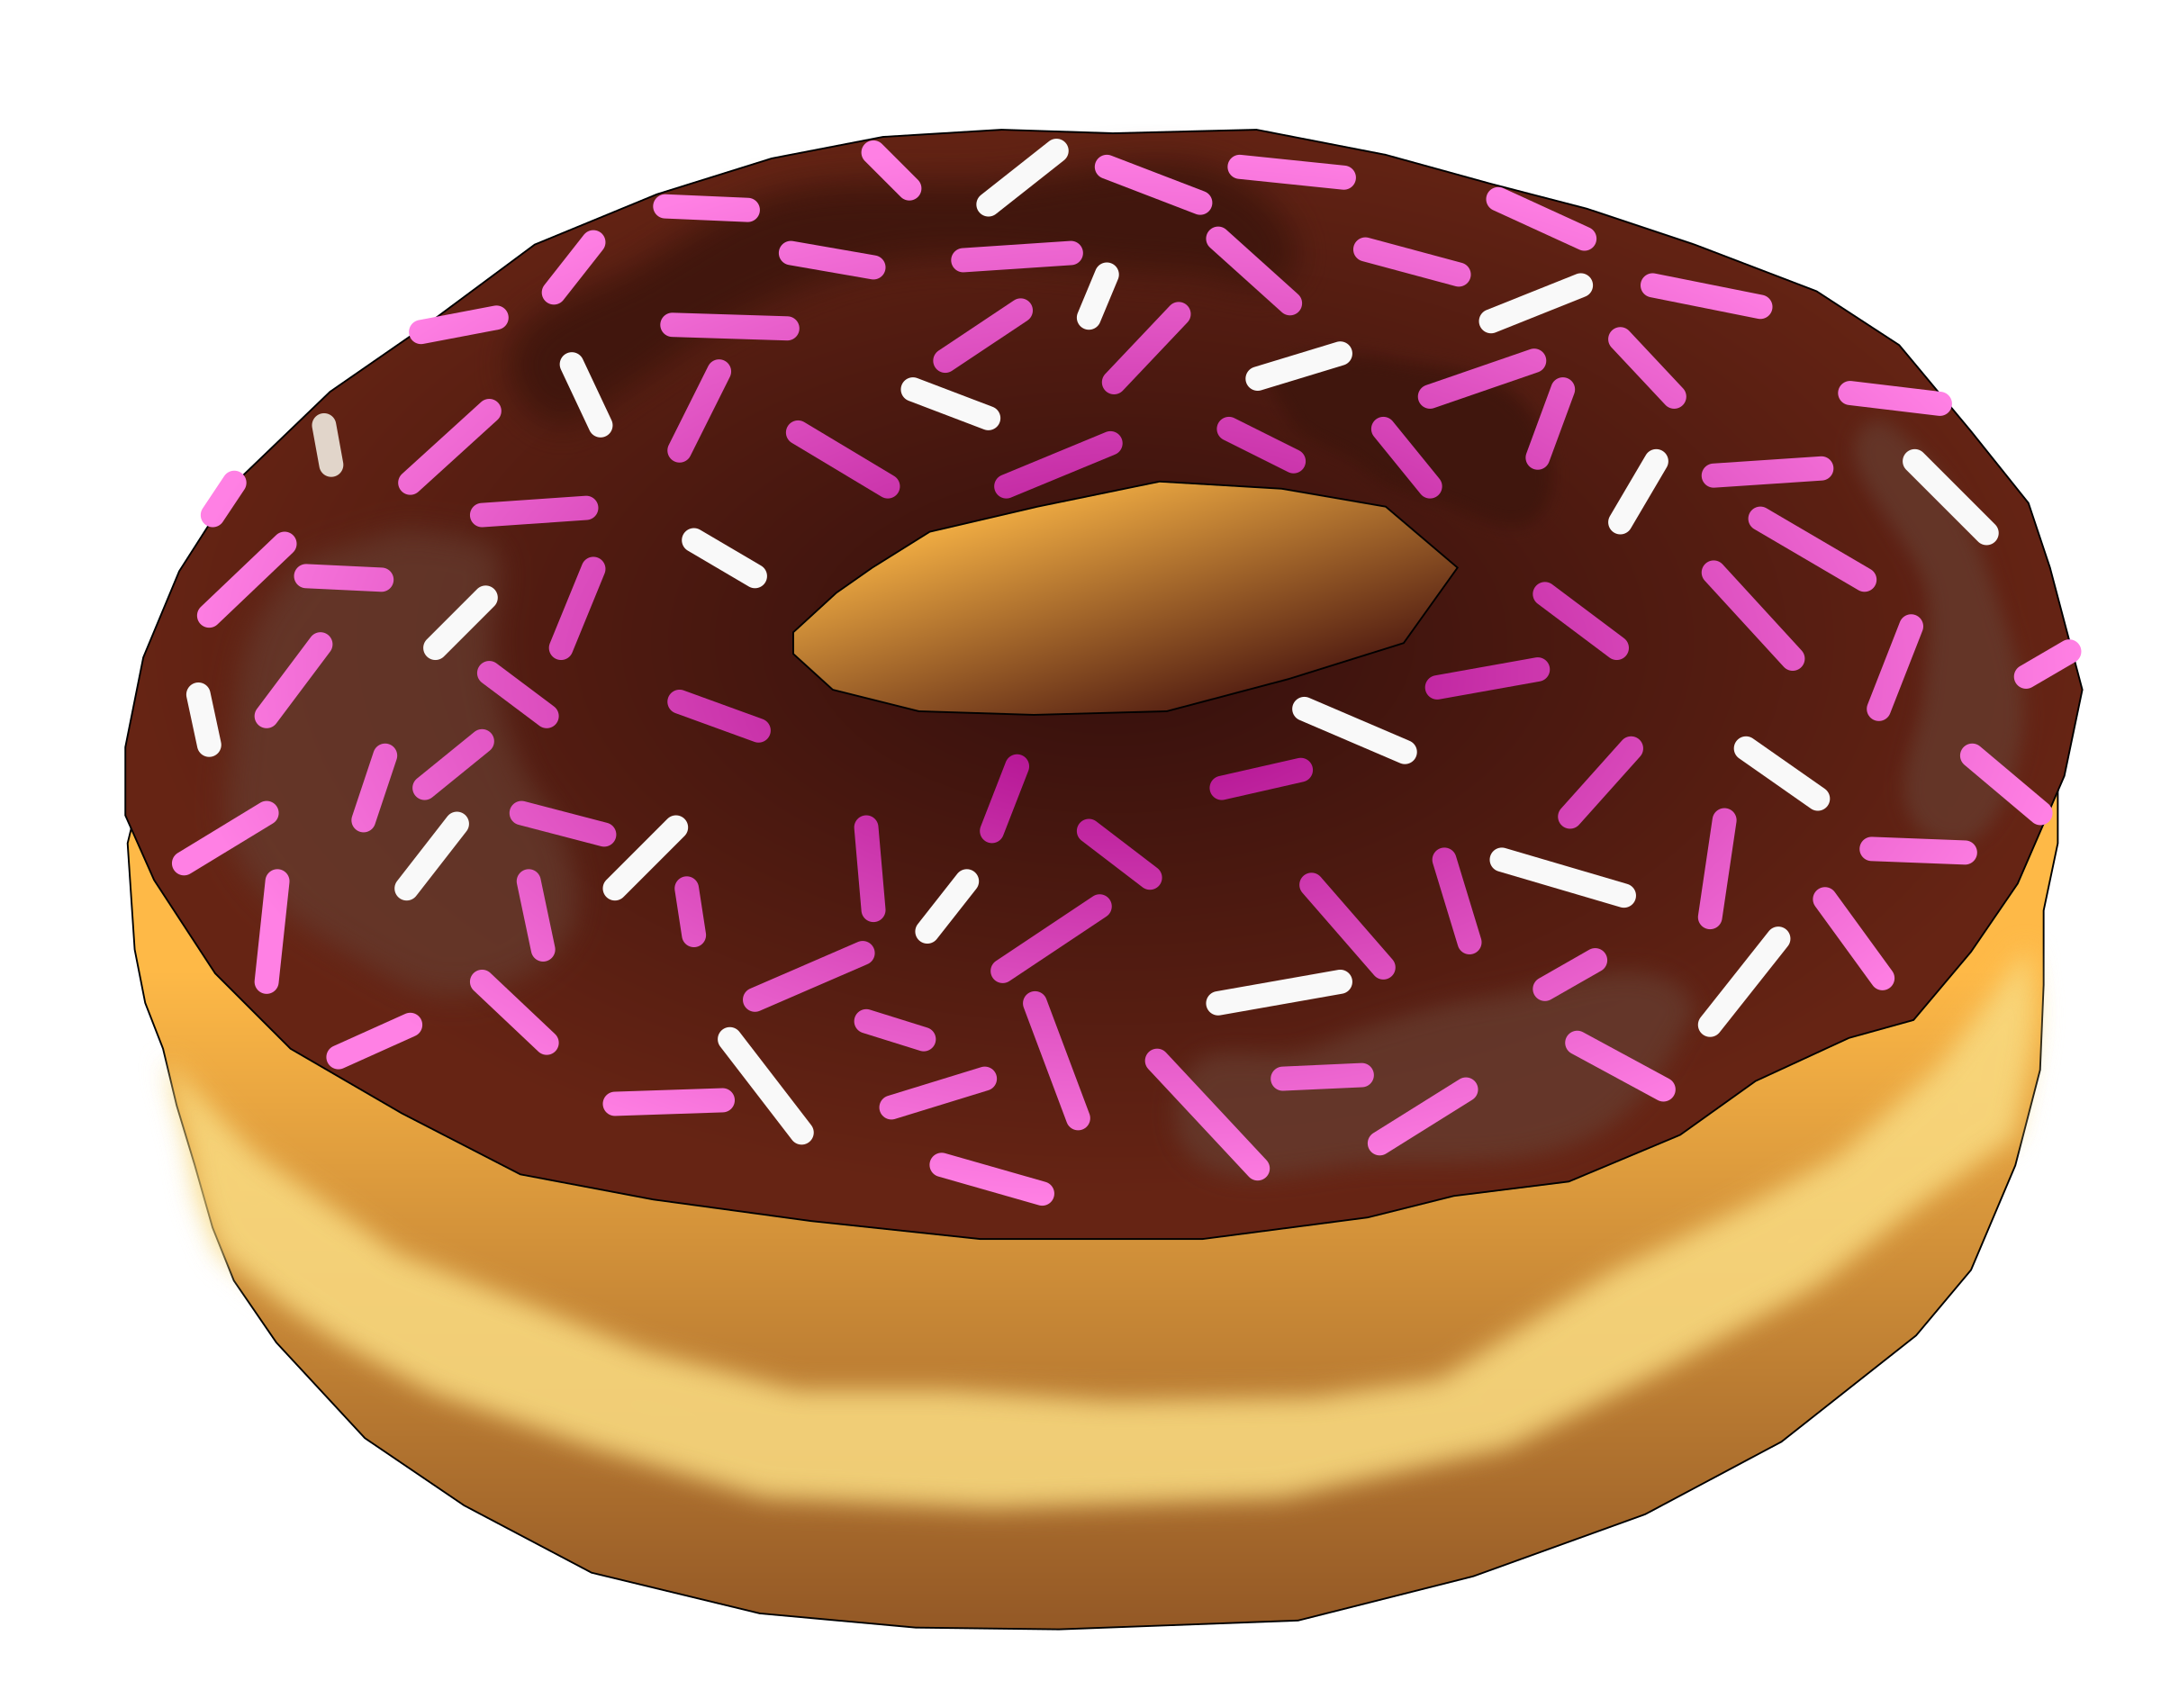 Donuts clipart valentines. Pink donut big image